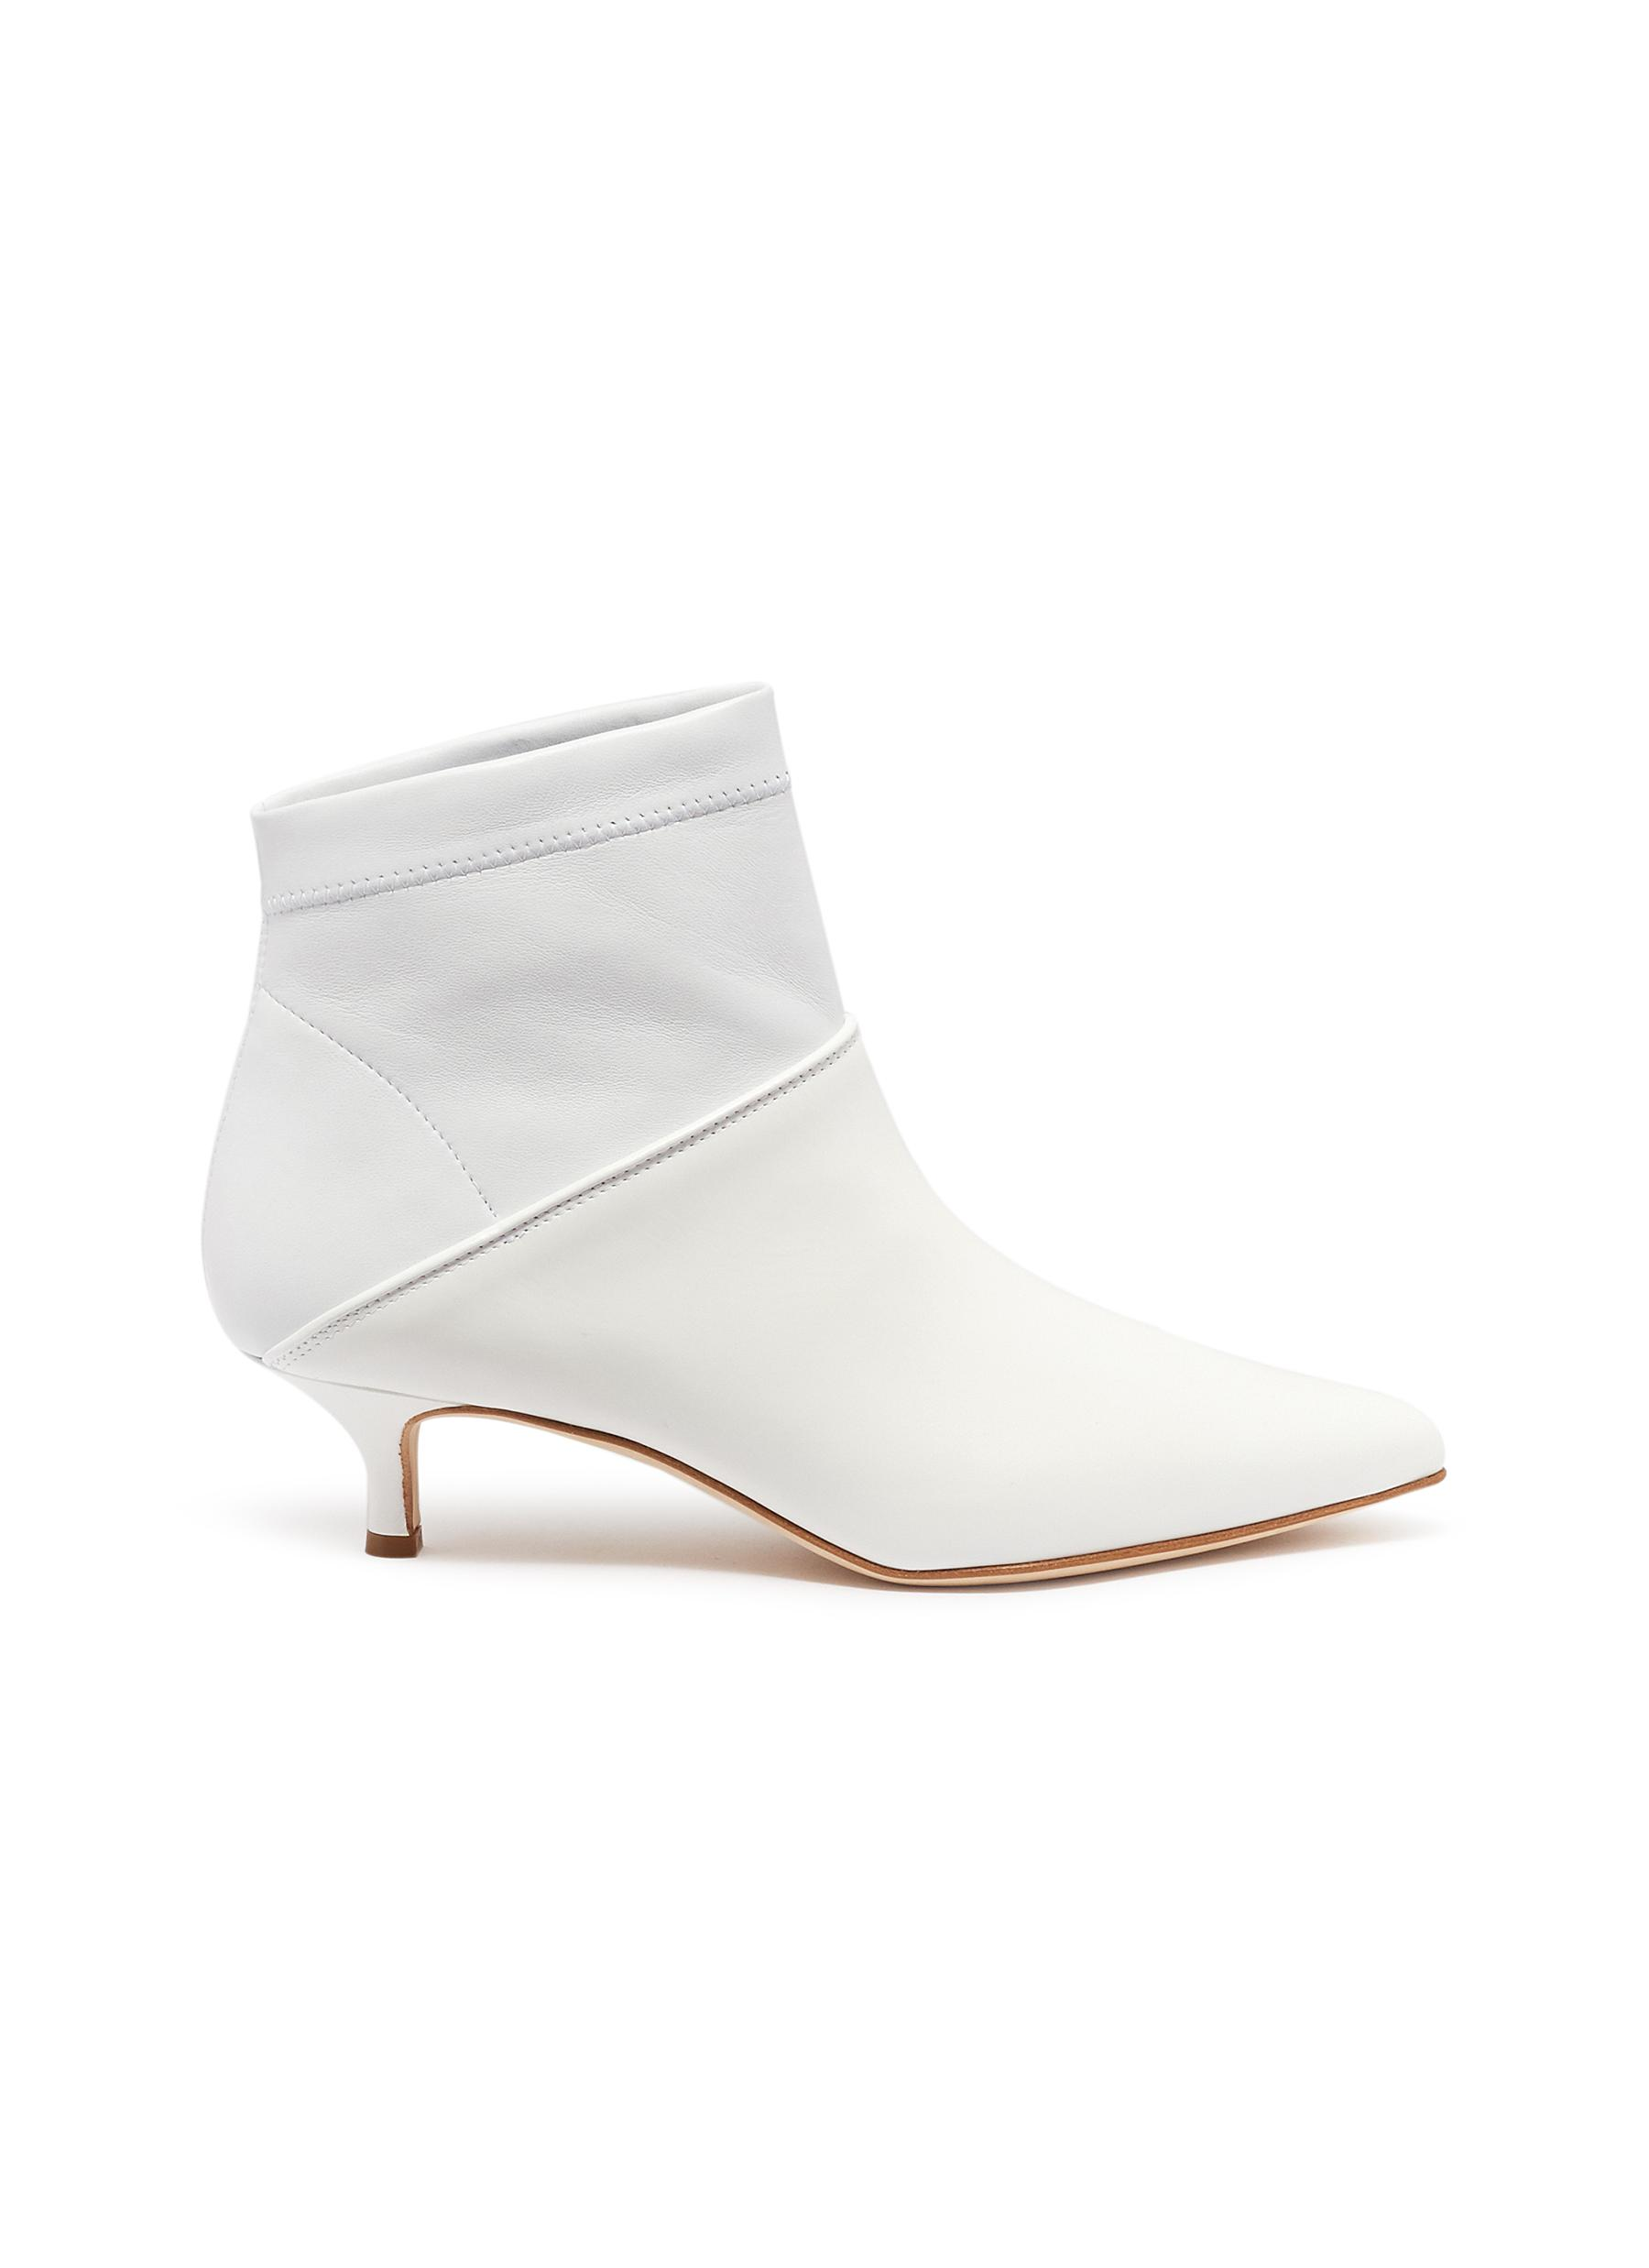 Jean patent leather panel ankle boots by Tibi